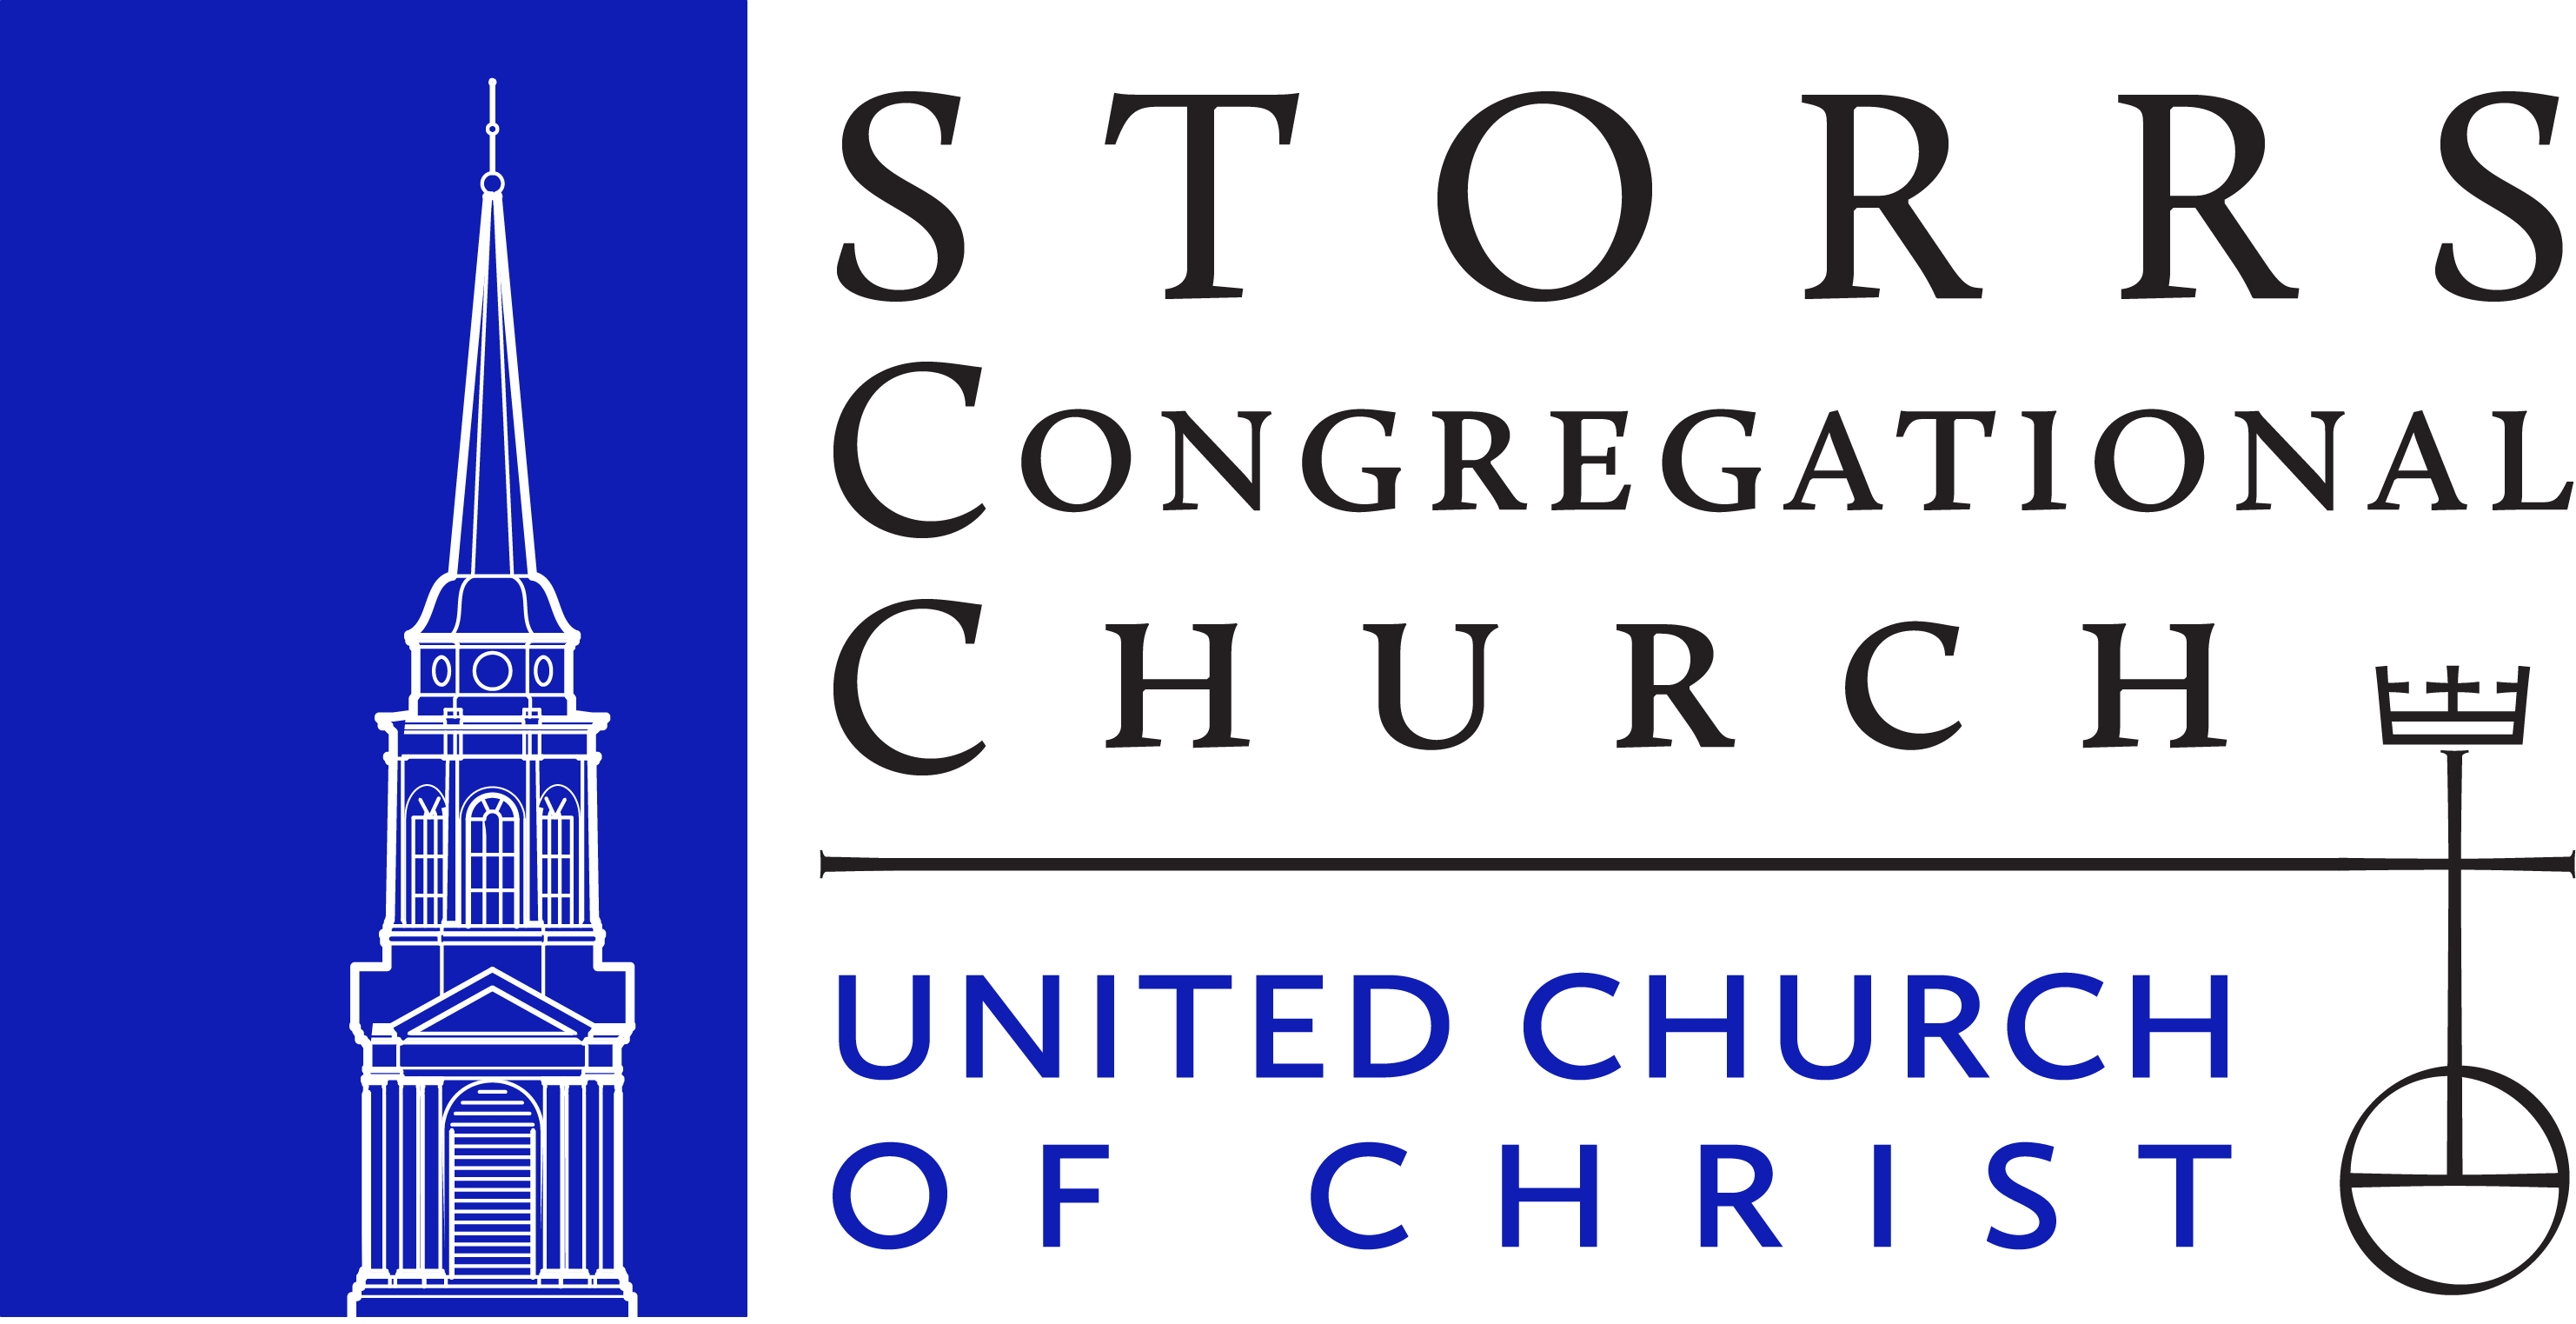 Carillon Newsletter Archives - Storrs Congregational Church UCC